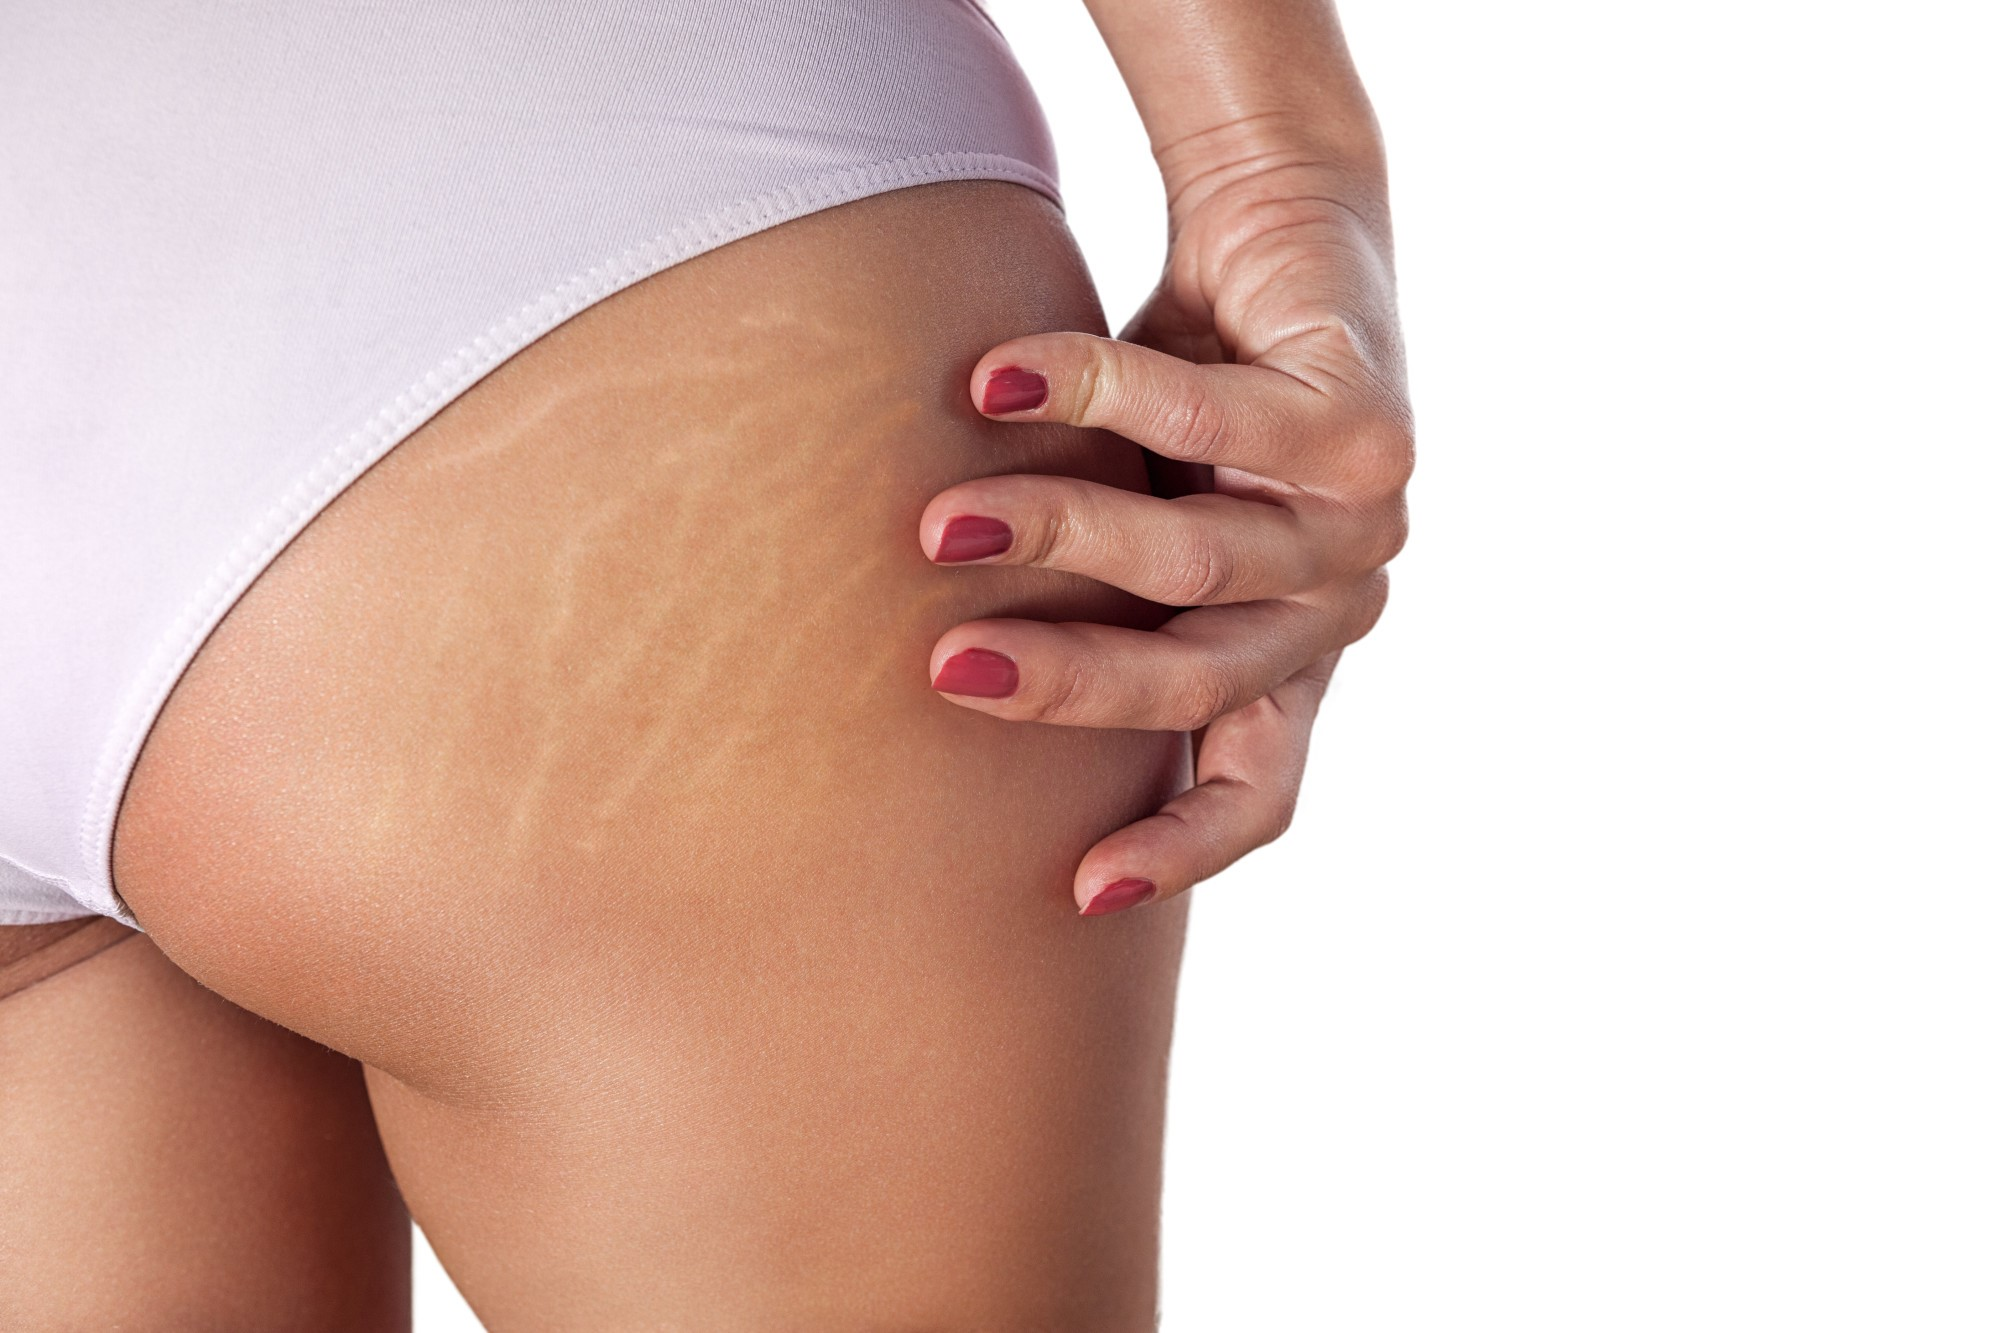 How To Reduce The Appearance Of Cellulite 5 Tips To Hide Those Butt Dimples